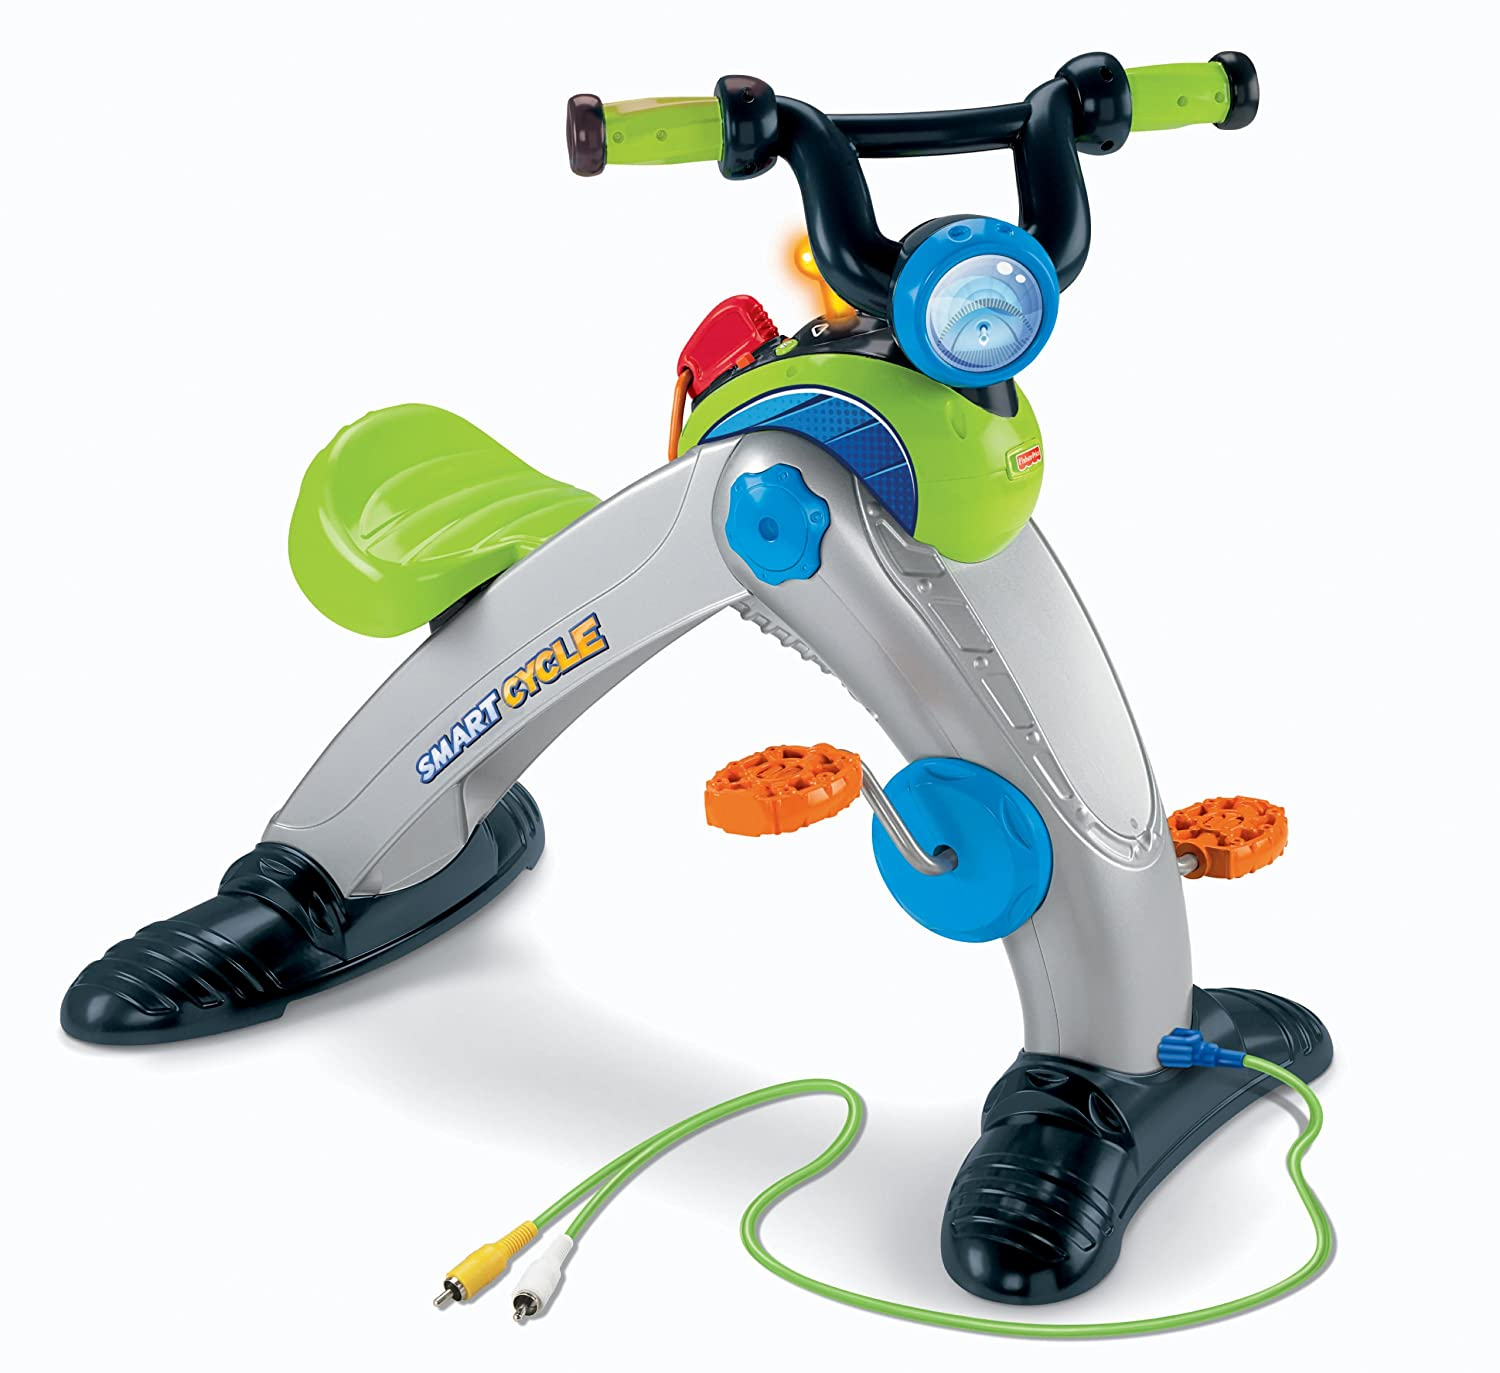 amazon com fisher price smart cycle 3d old version racing game w rh amazon com Smart Cycle Directions Smart Cycle Directions